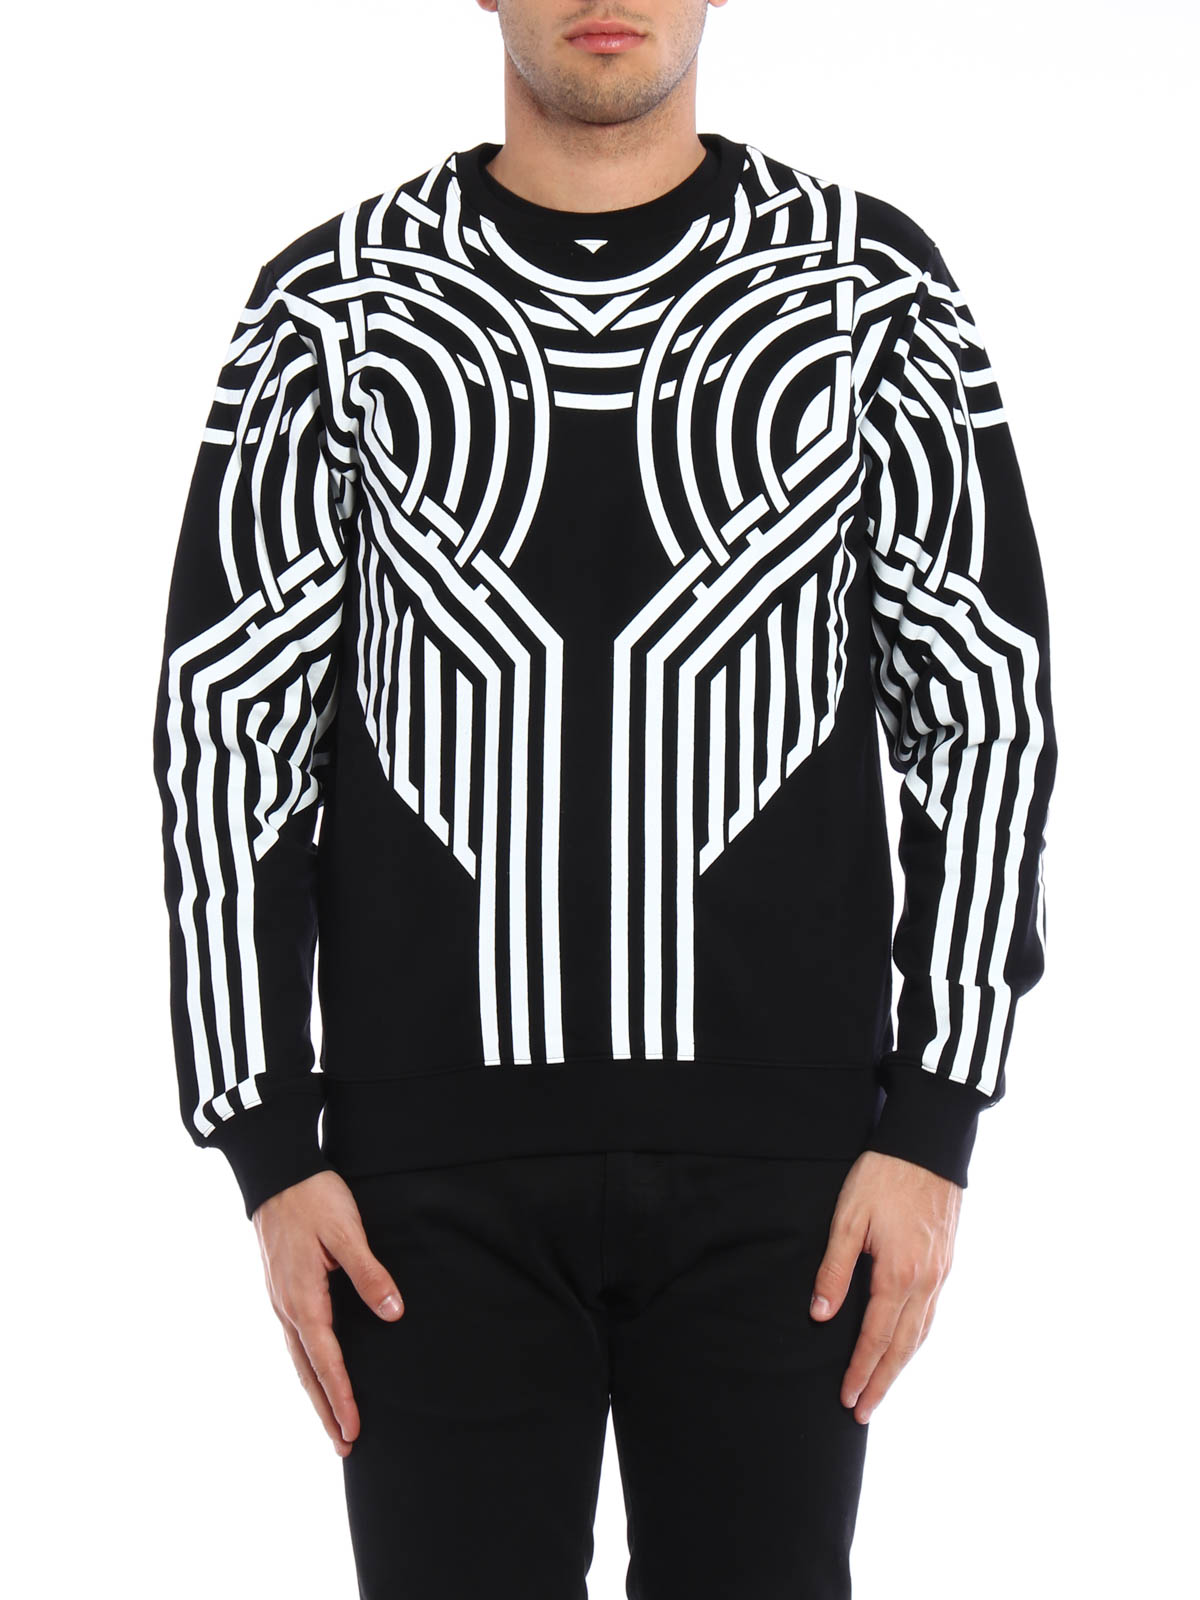 Printed cotton sweatshirt by Les Hommes - Sweatshirts & Sweaters ...